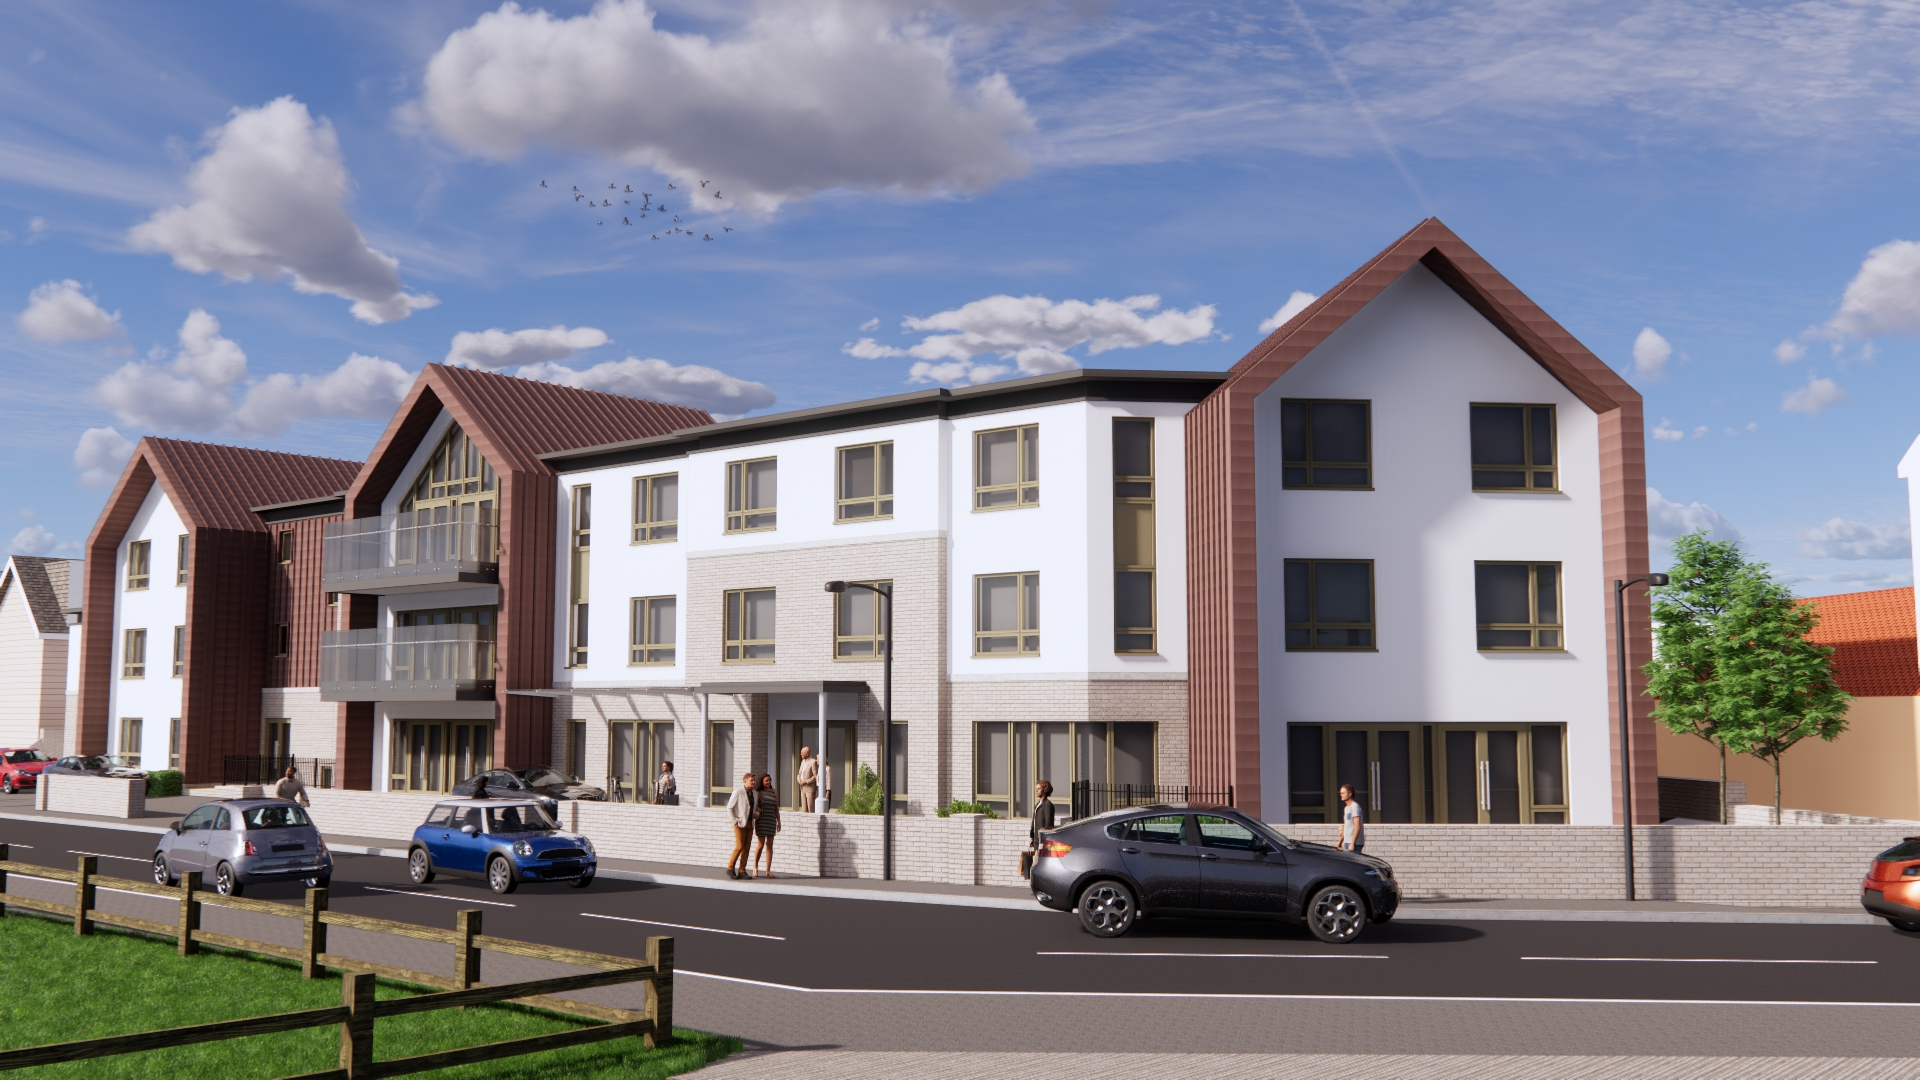 Anavo's first planning application in Lancing, West Sussex